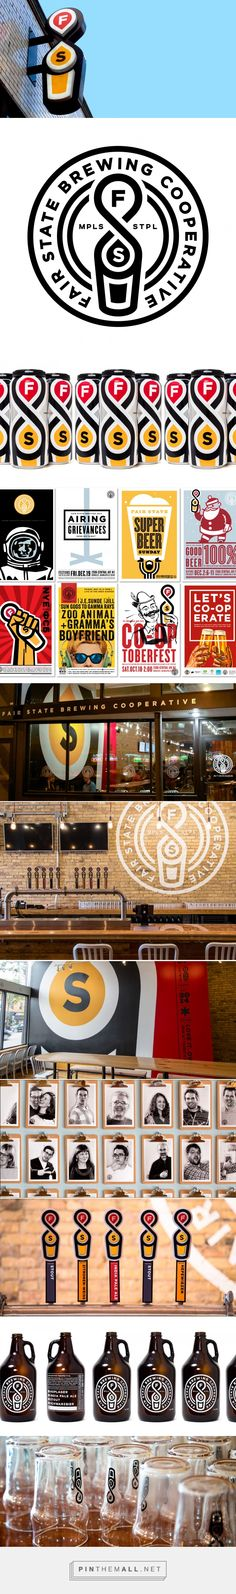 Fair State Brewing Cooperative | Little - created via http://pinthemall.net